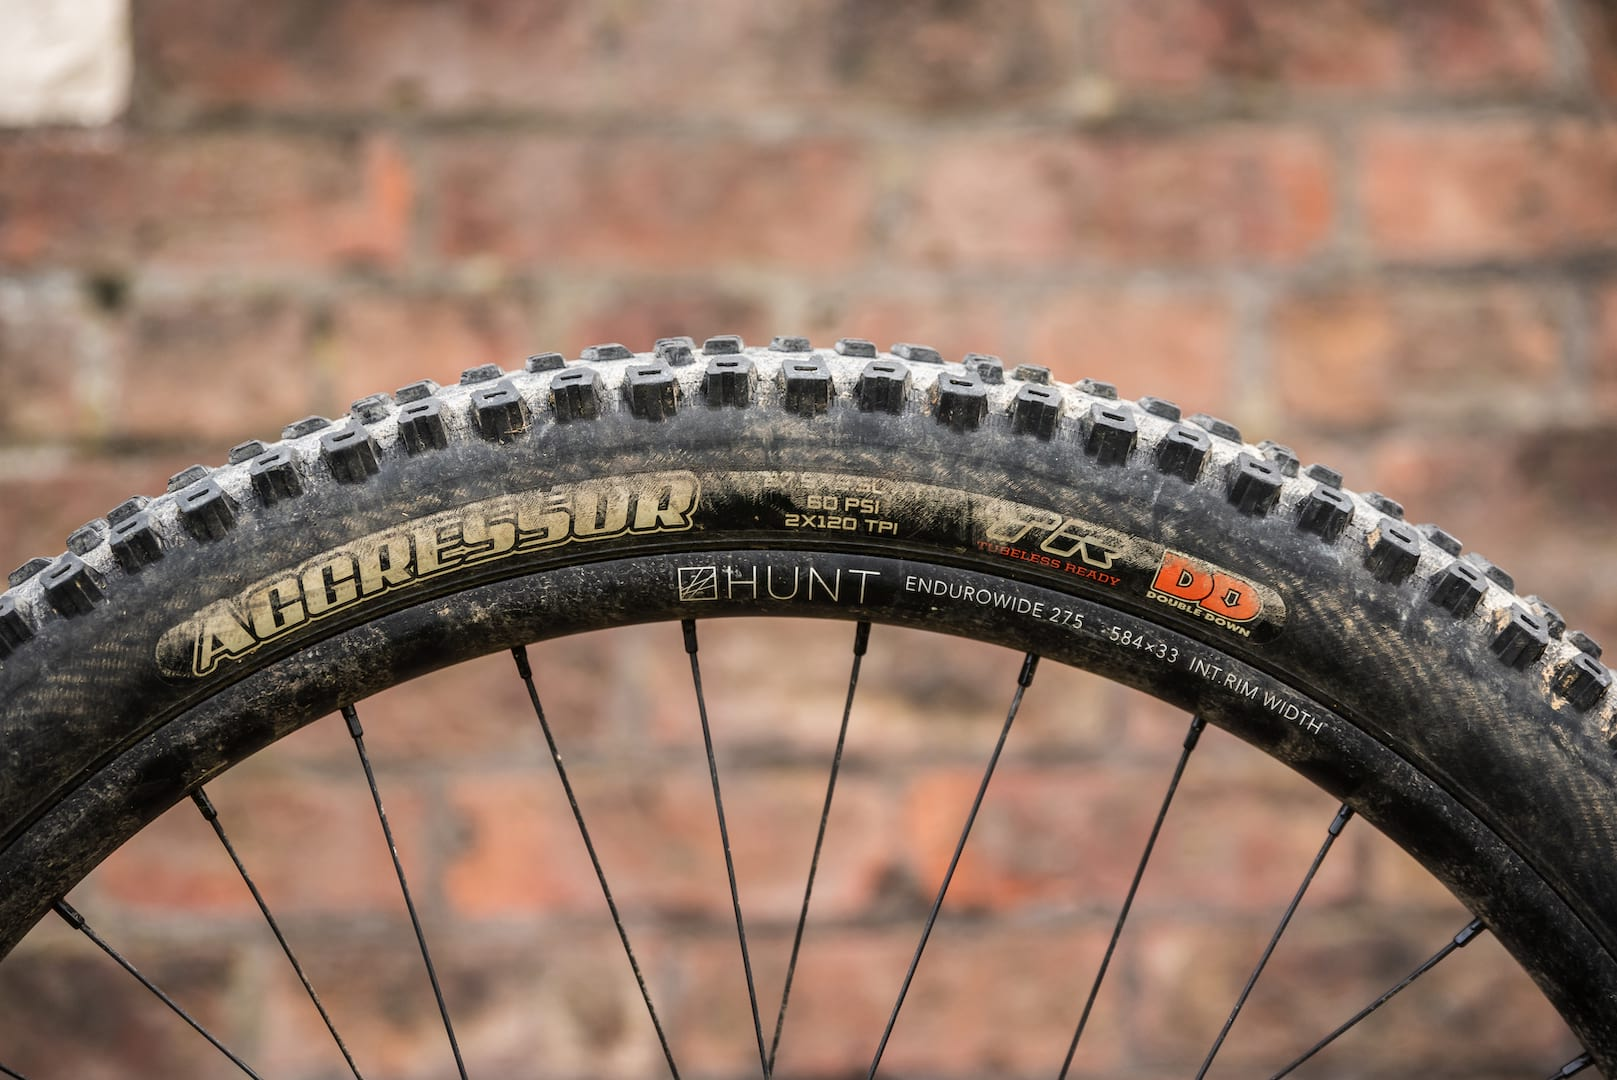 maxxis aggressor doubledefence